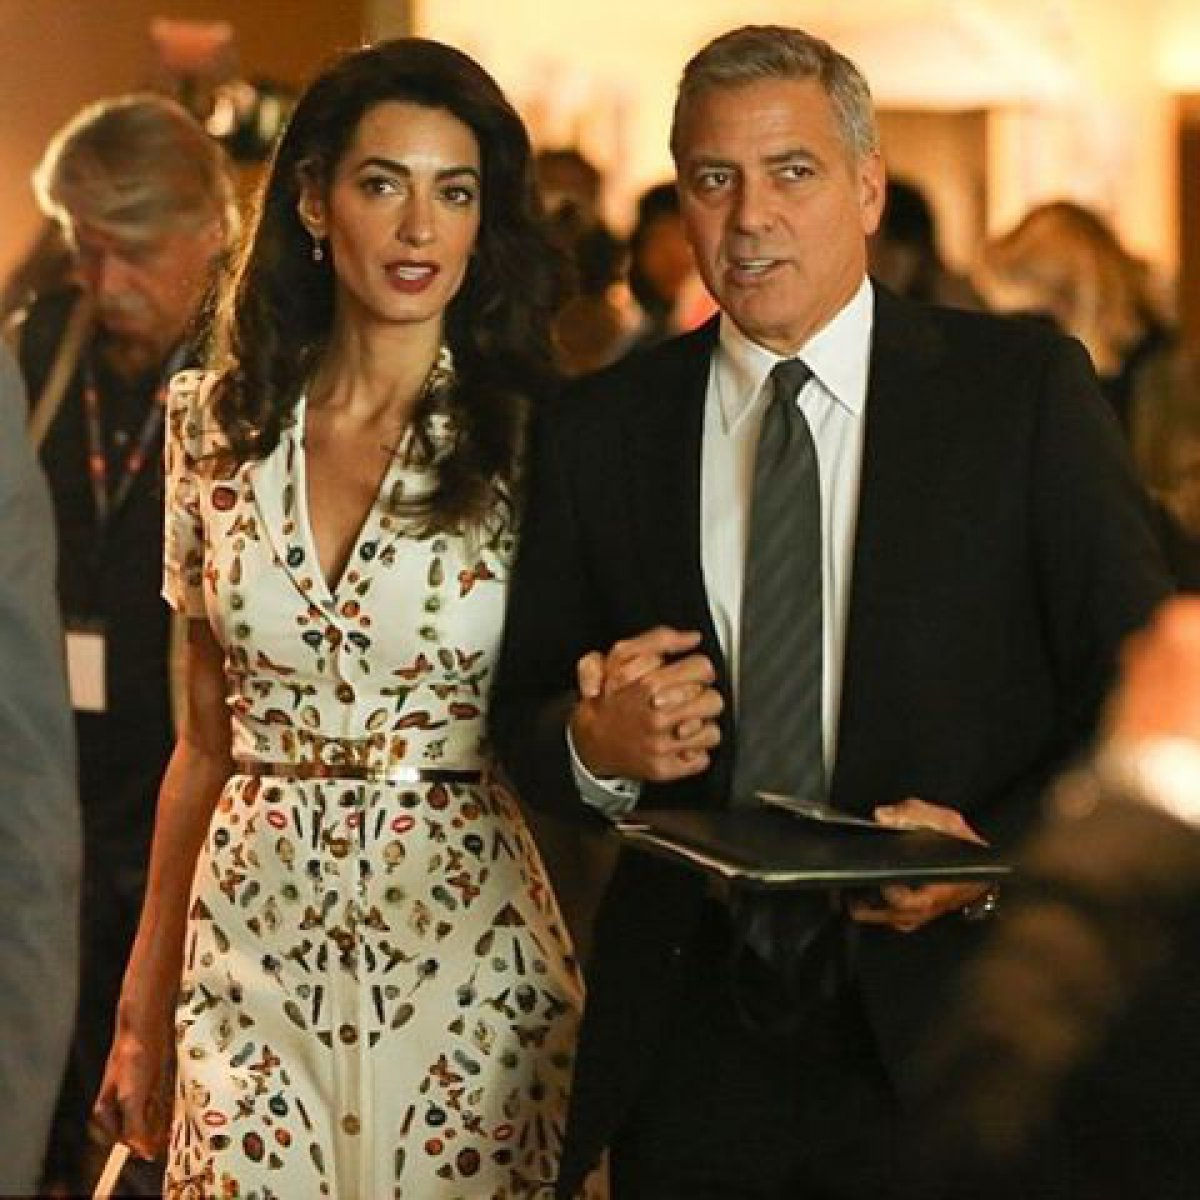 George Clooney and pregnant wife Amal Clooney to avoid